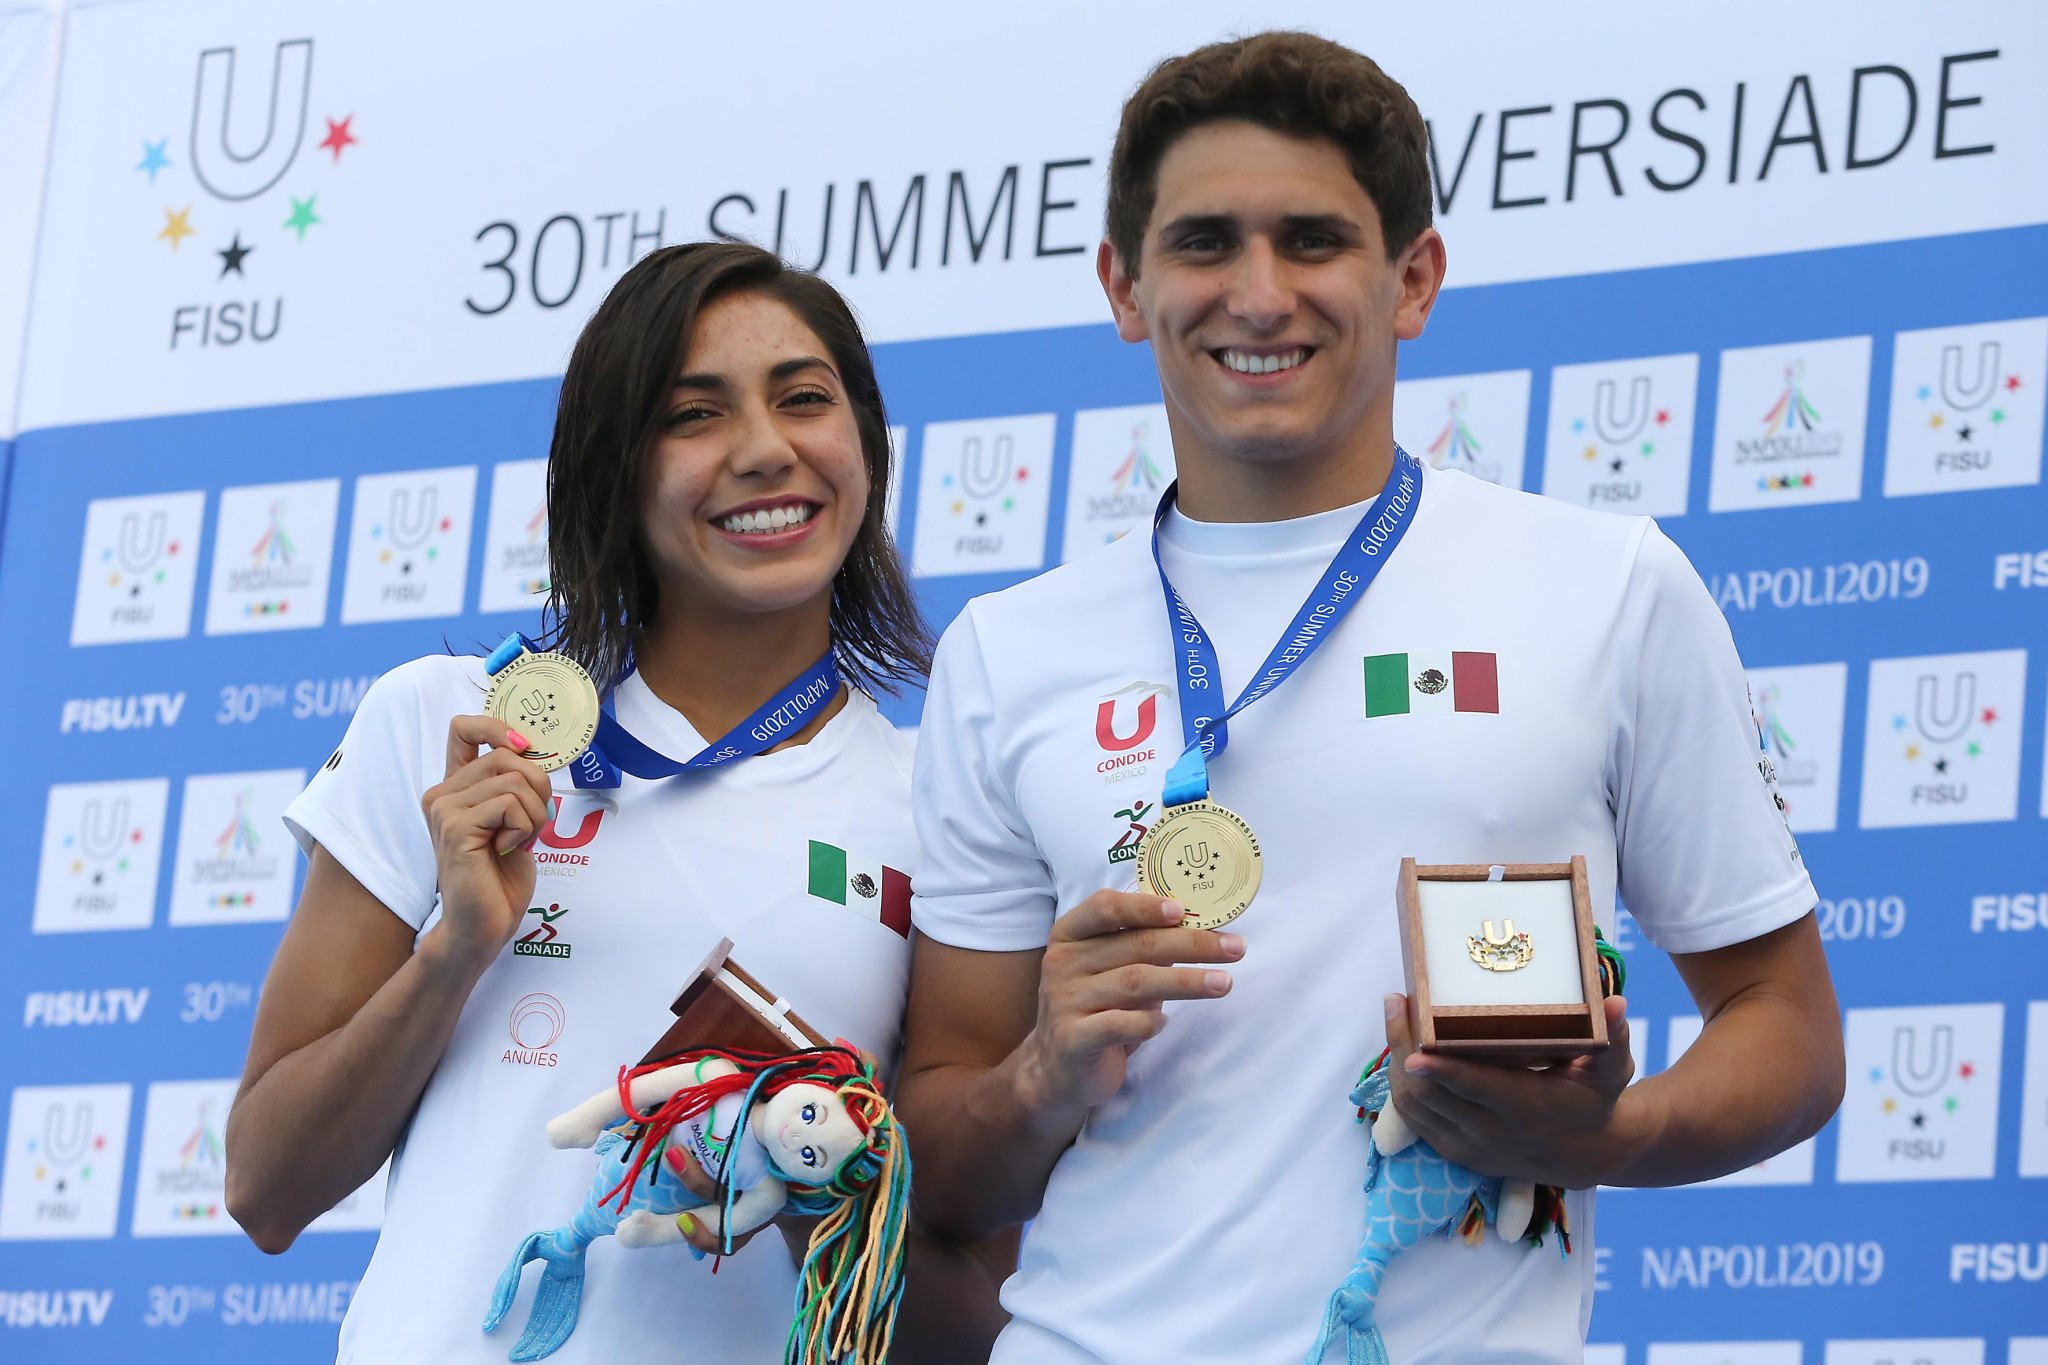 Mexico halted China's diving domination with two golds at Mostra d'Oltremare ©Naples 2019